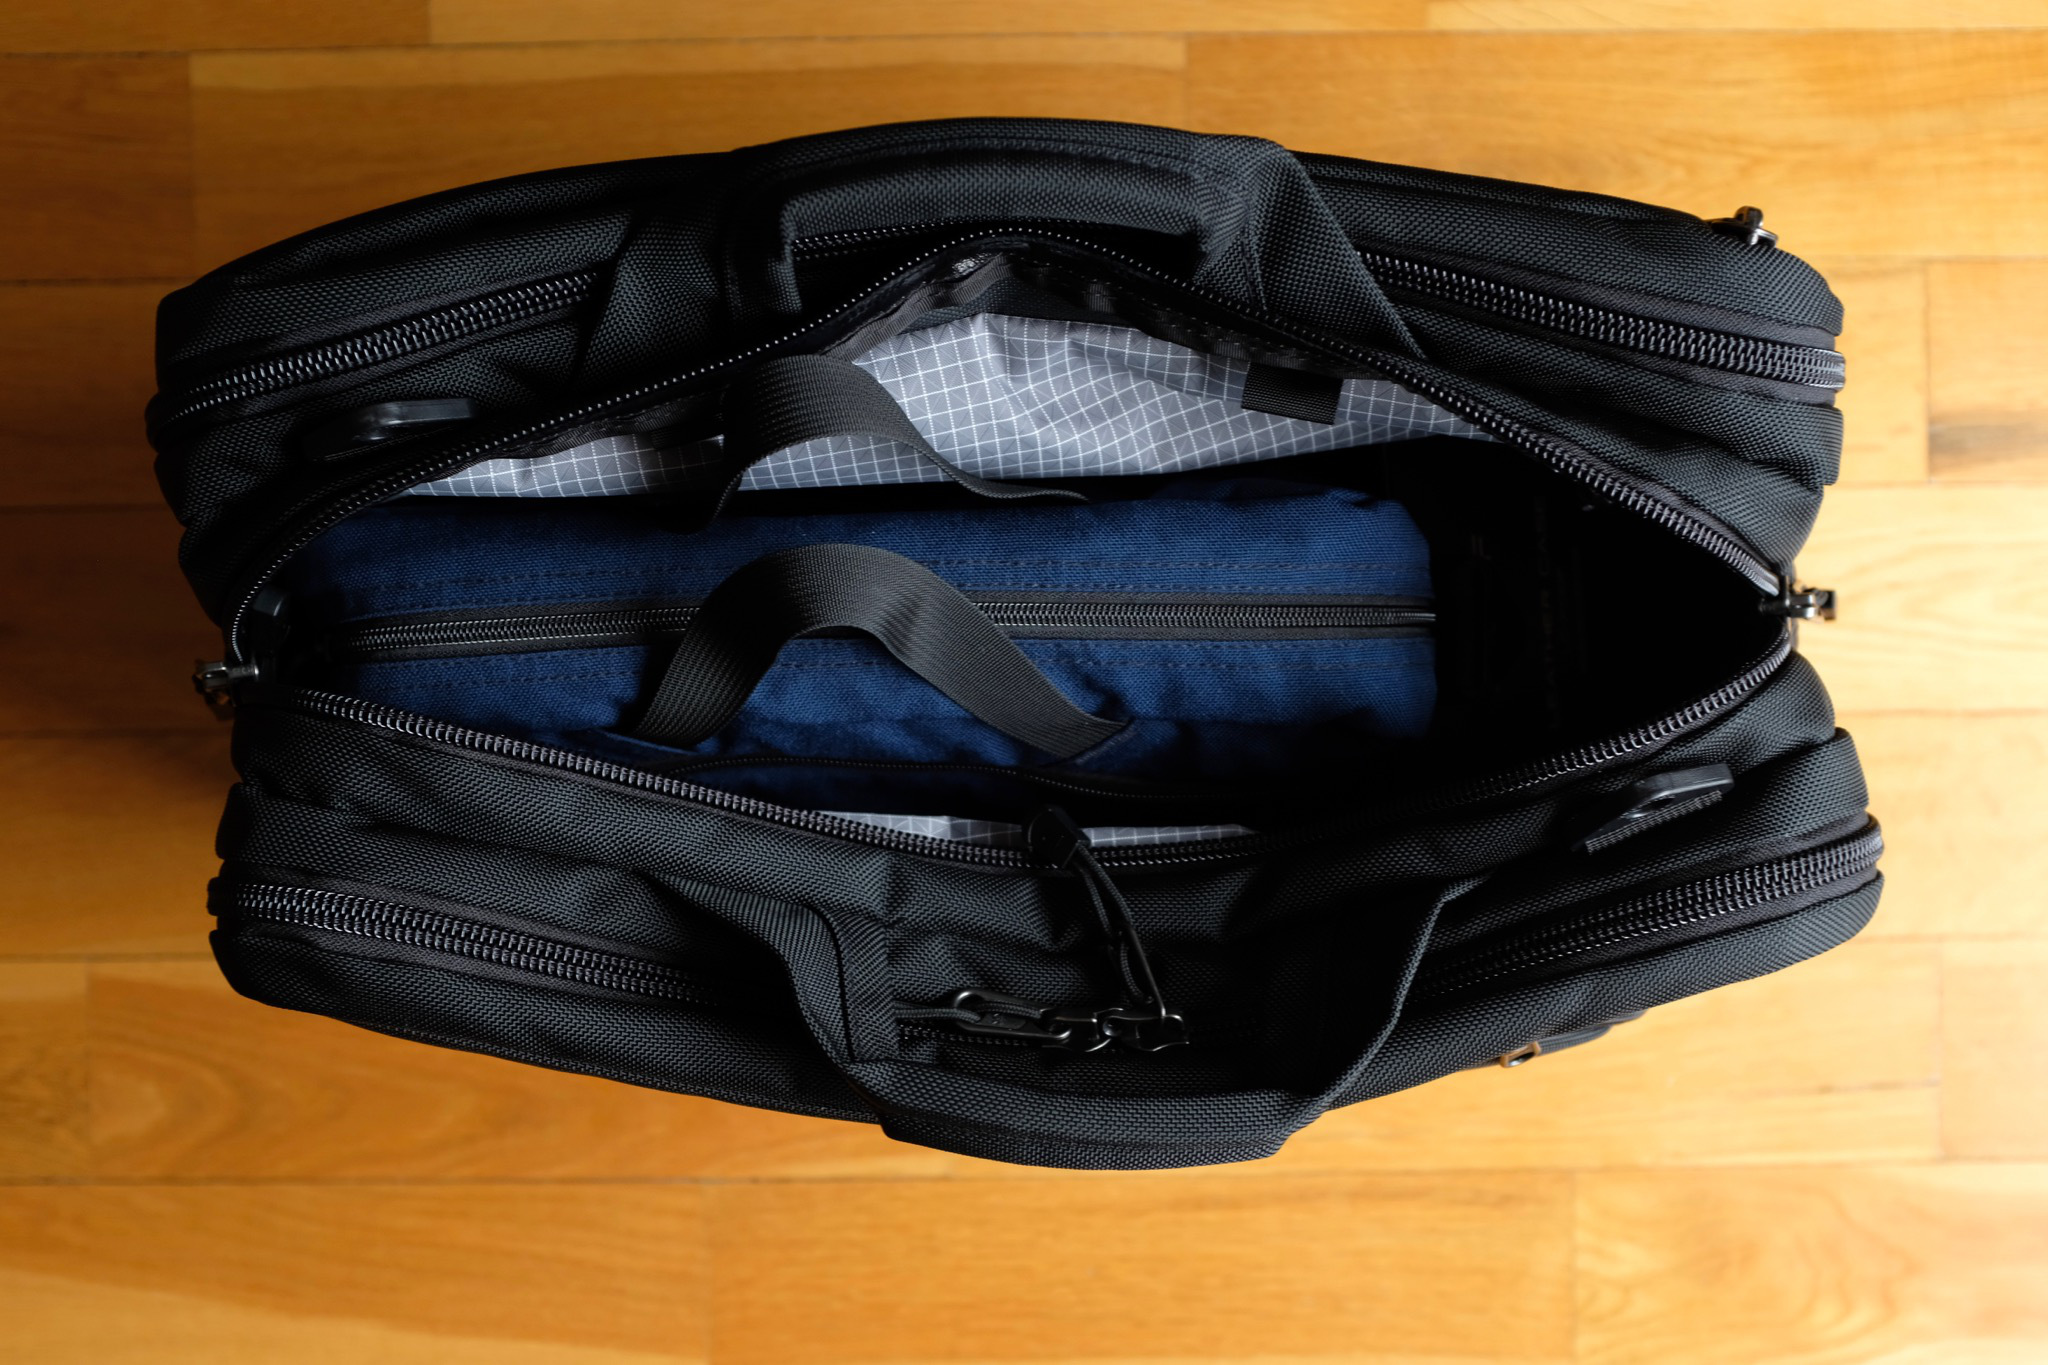 A Daylight Briefcase perfectly fits into the middle compartment of the Tri-Star